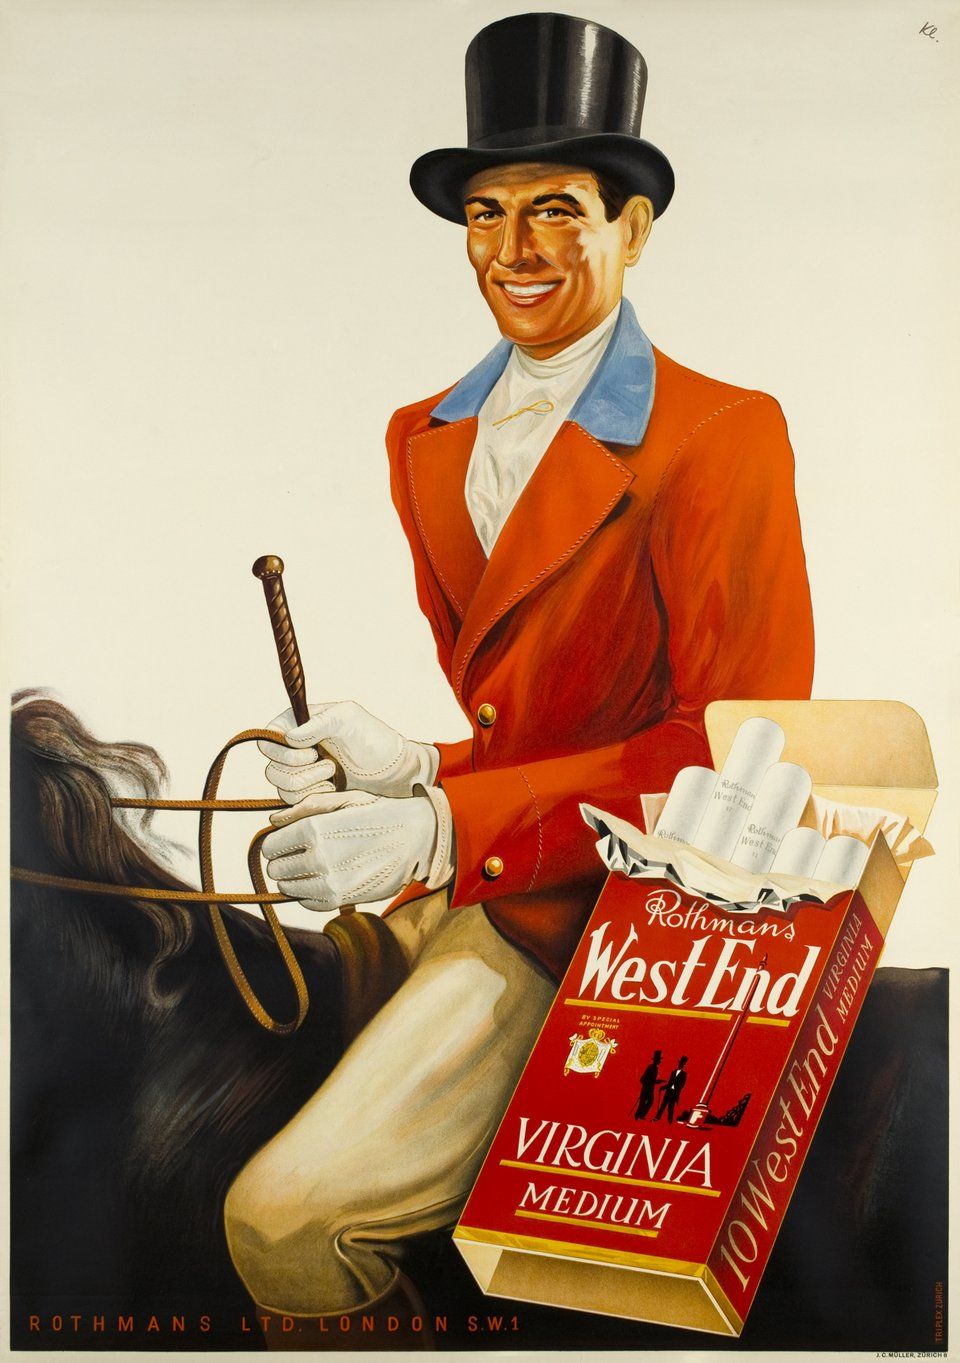 Rothmans West End, Virgina medium – Vintage poster – H KLOCHLER – 1946